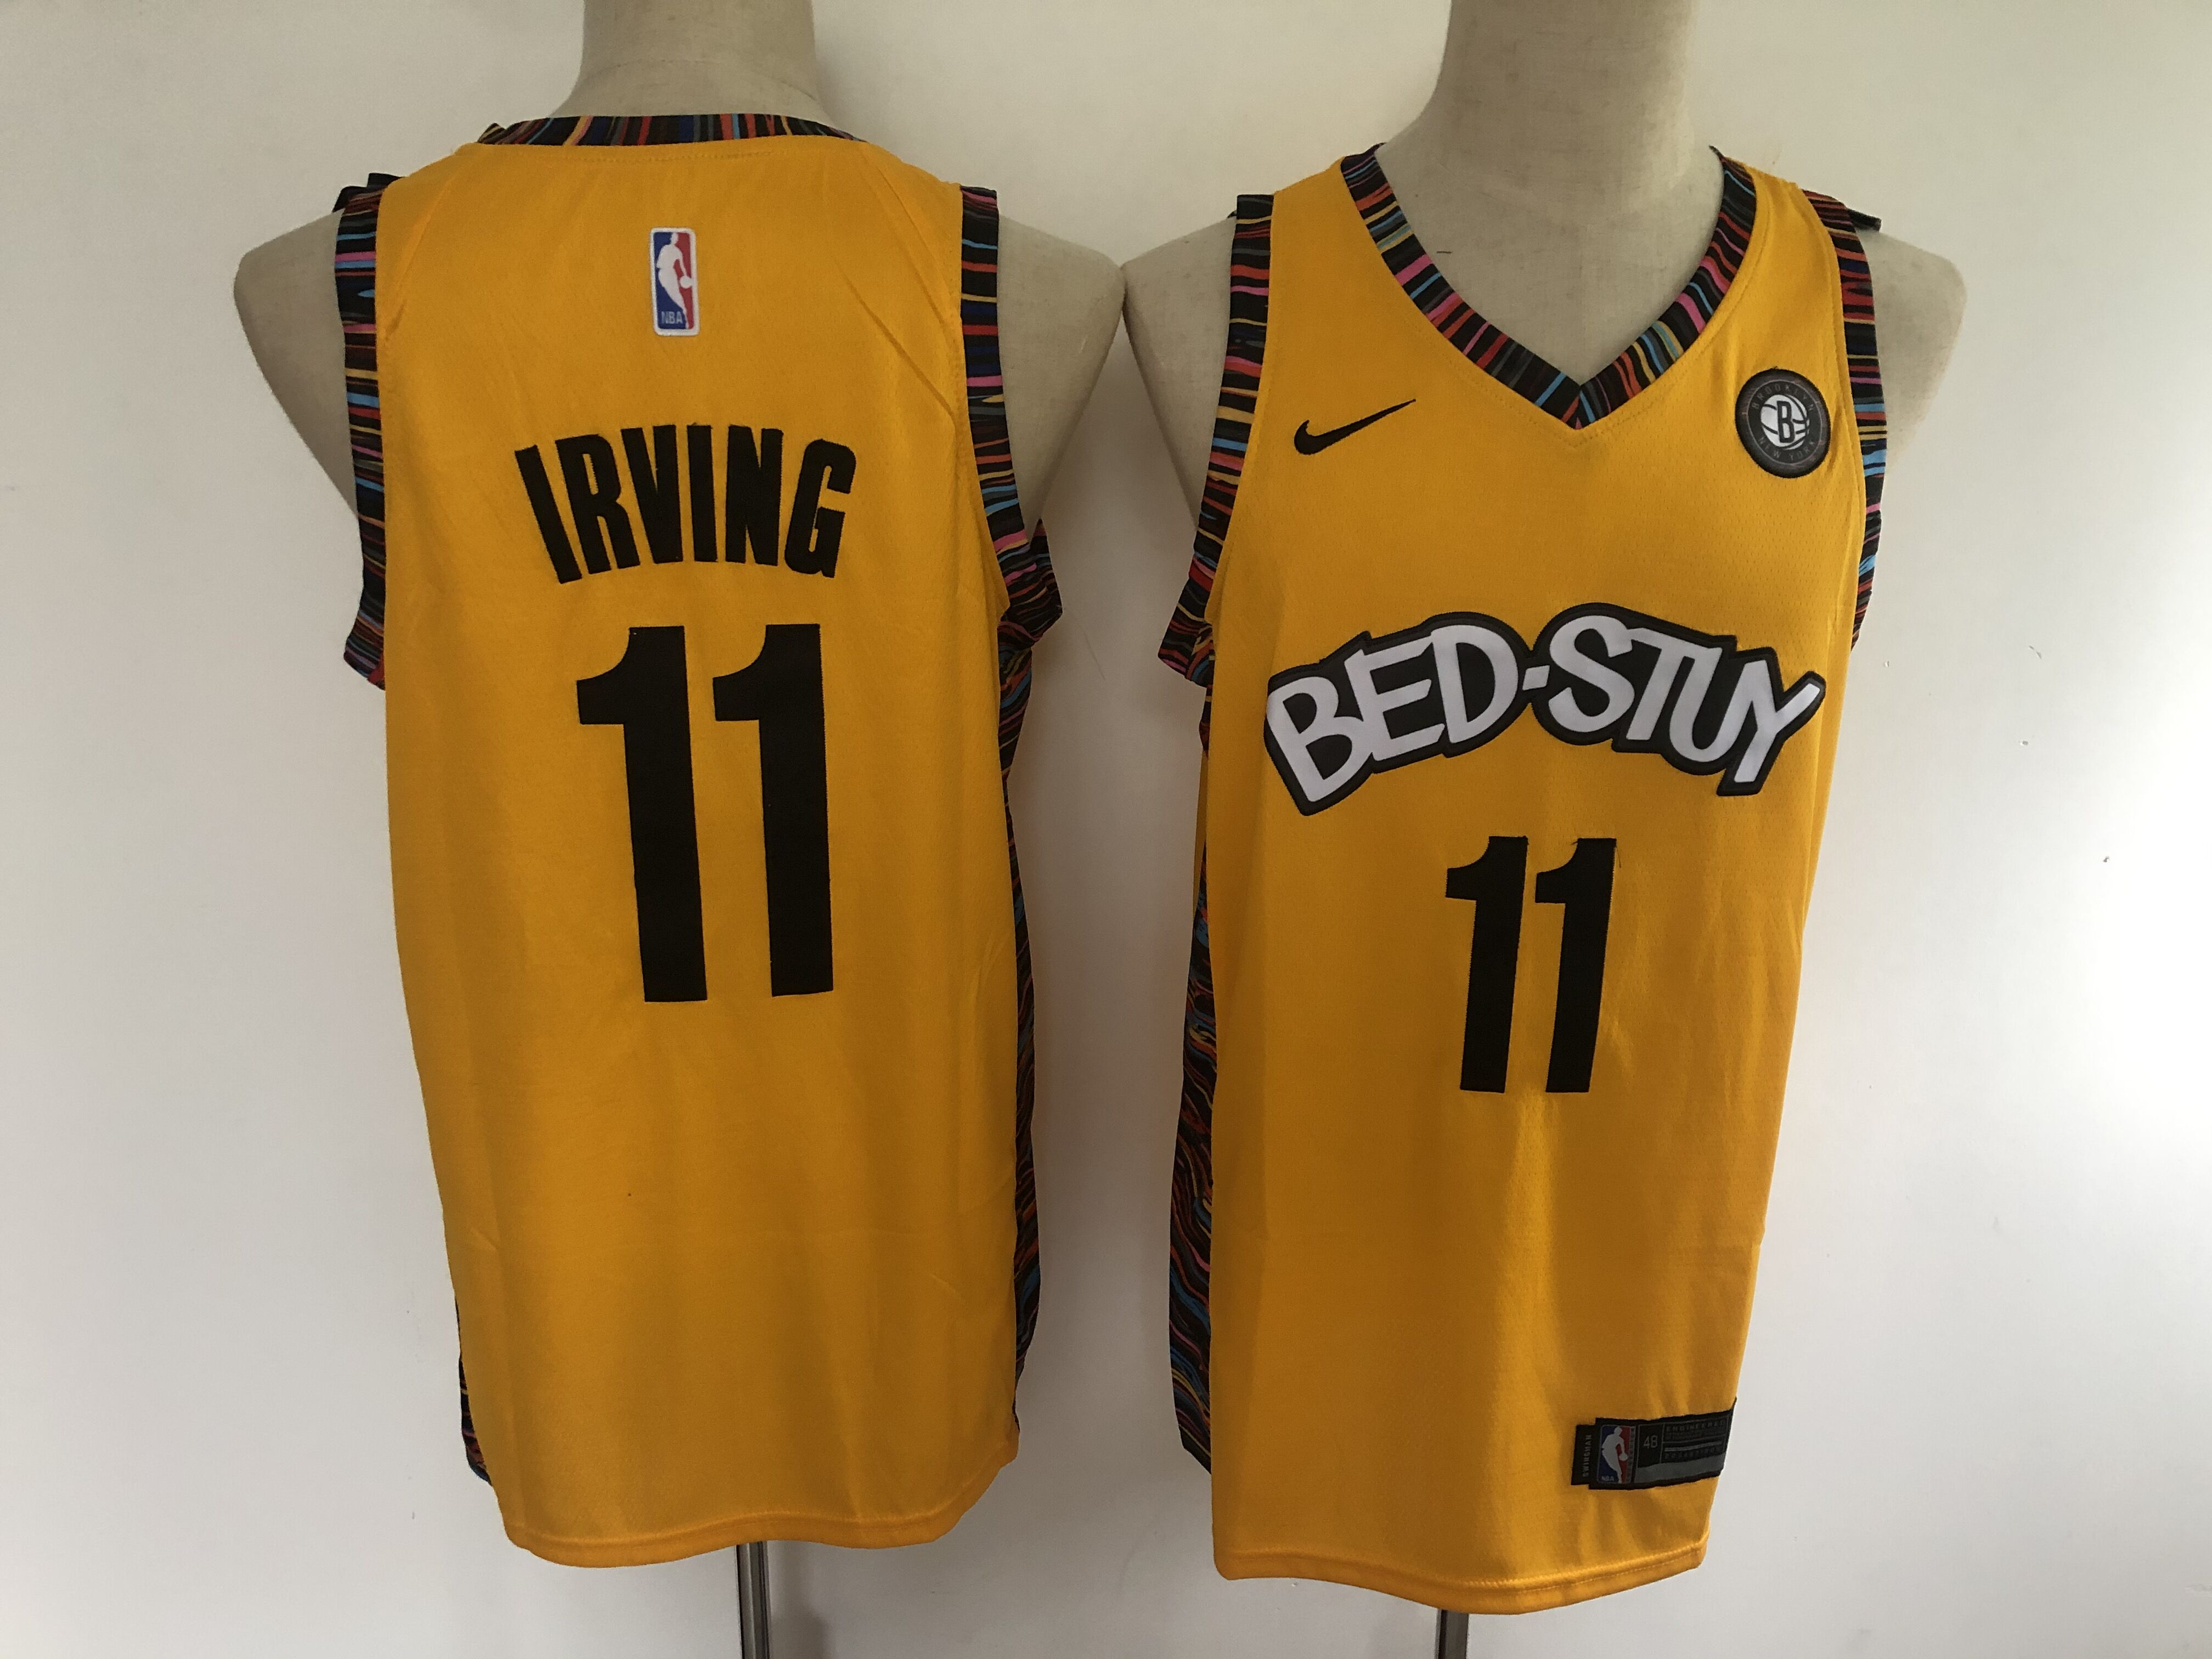 2020 Men Brooklyn Nets 11 Irving yellow Nike Game NBA Jerseys